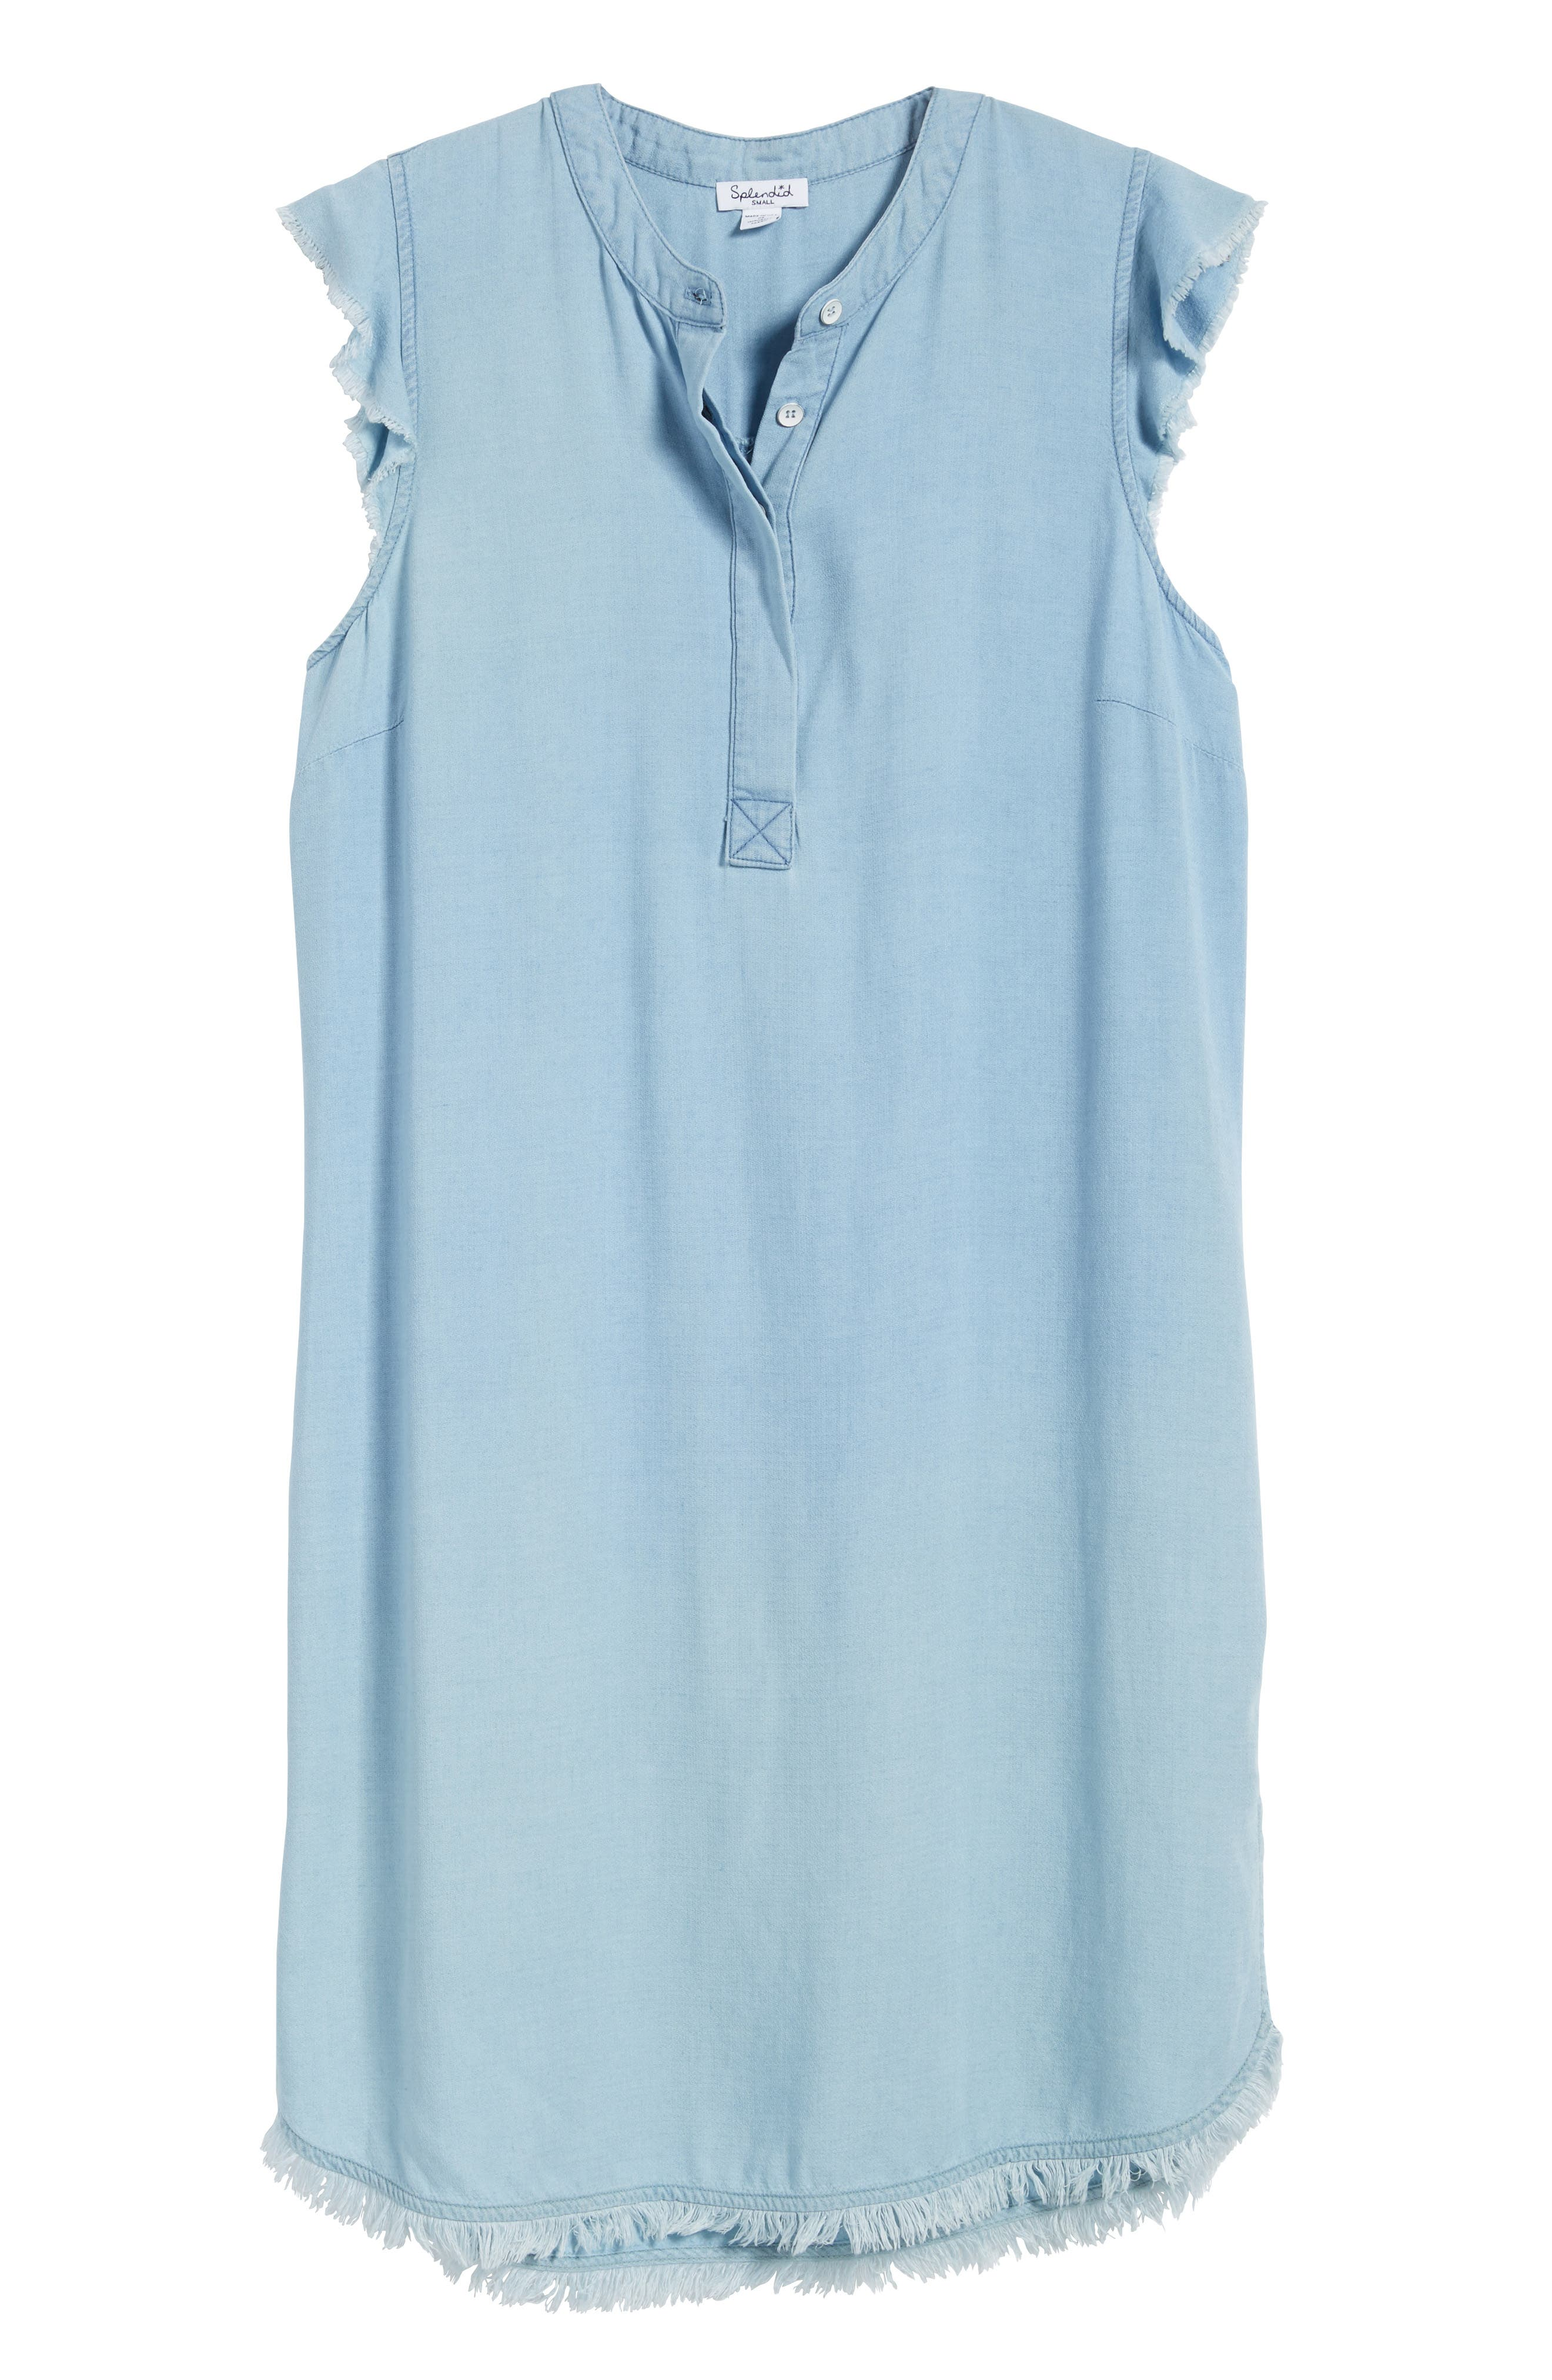 SPLENDID, Chambray Shift Dress, Alternate thumbnail 6, color, 400